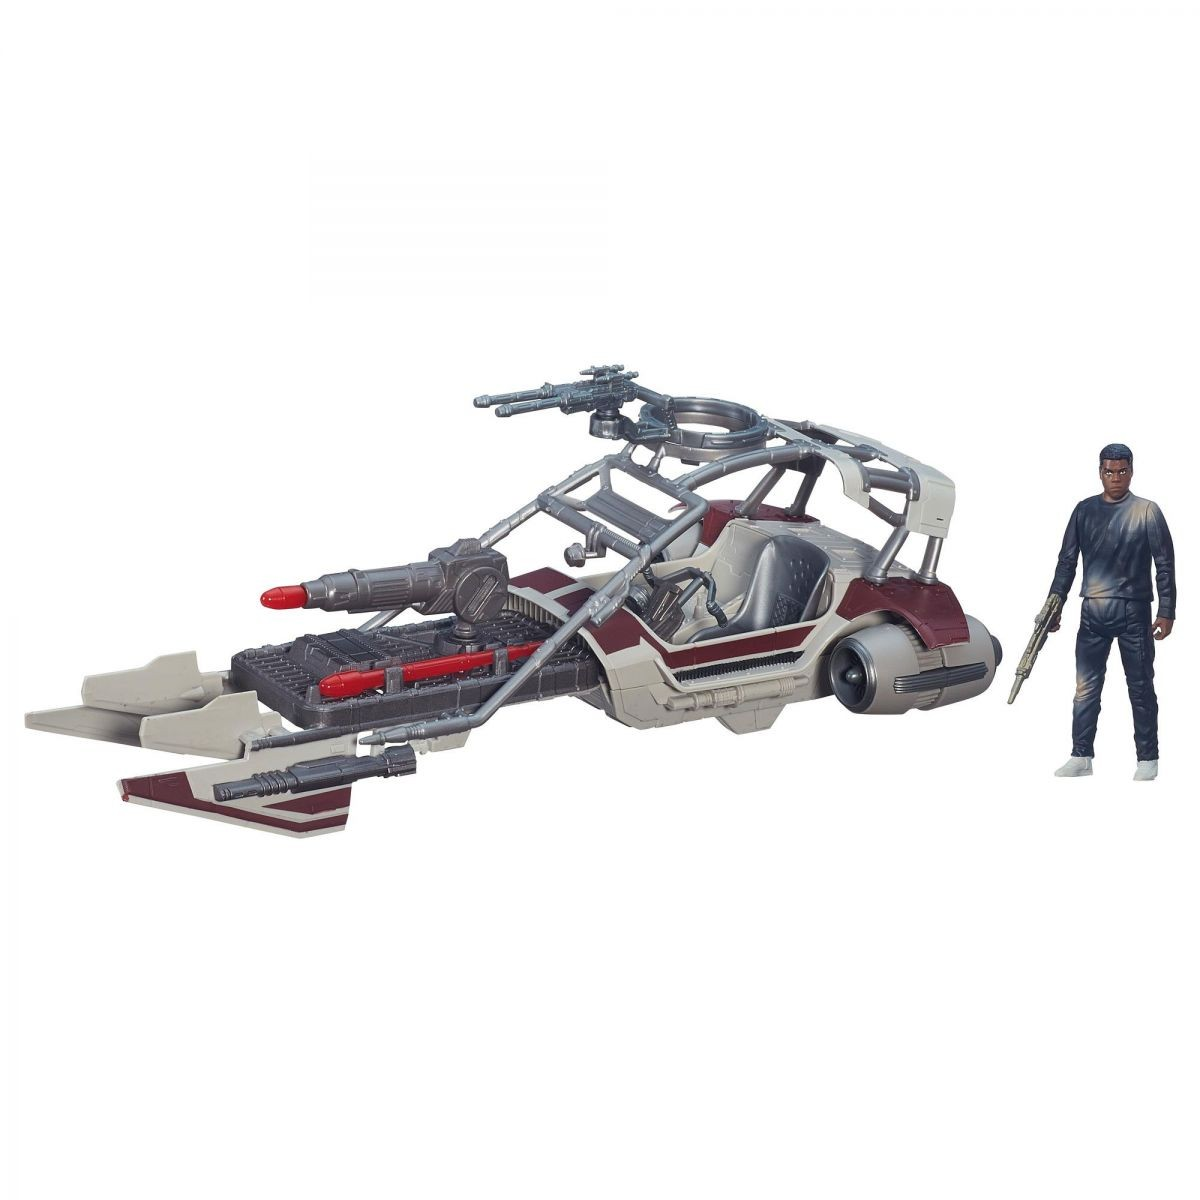 Star Wars The Force Awakens Landspeeder - Hasbro